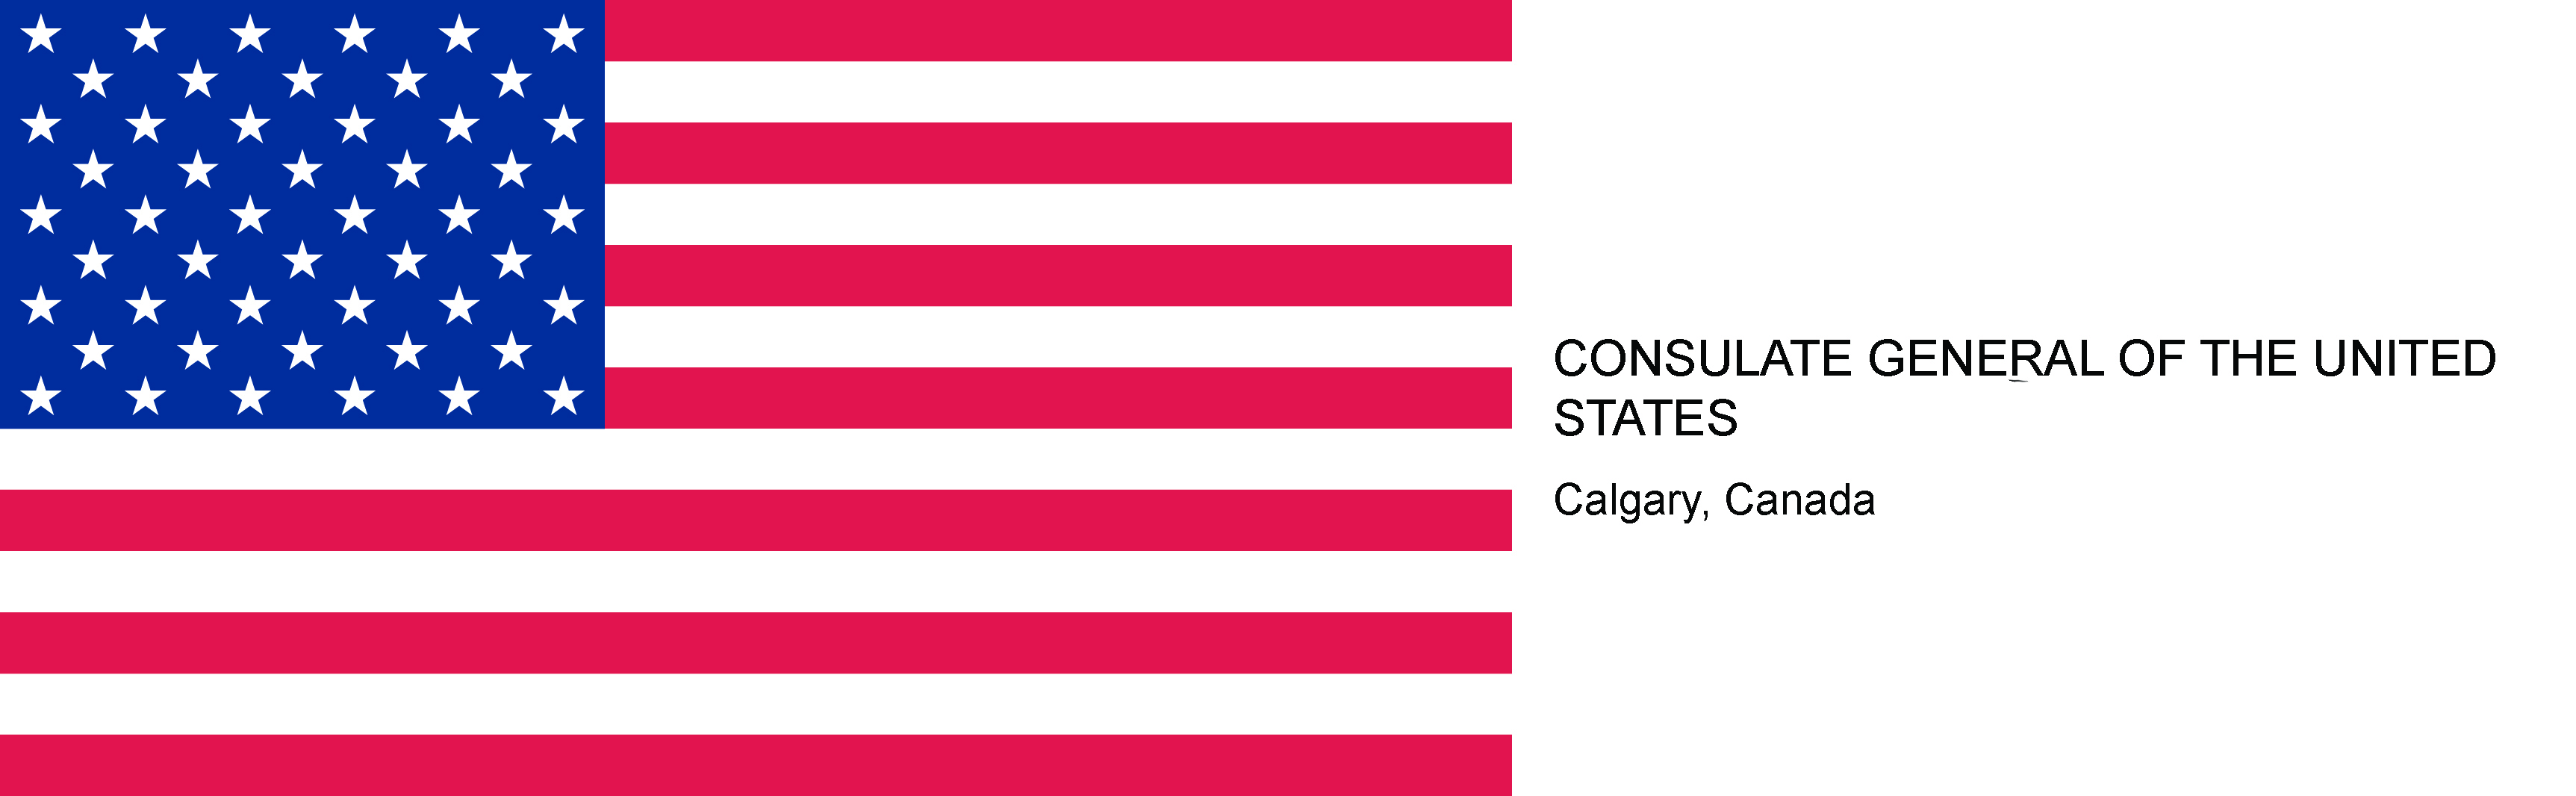 Consul General of the United States - Calgary